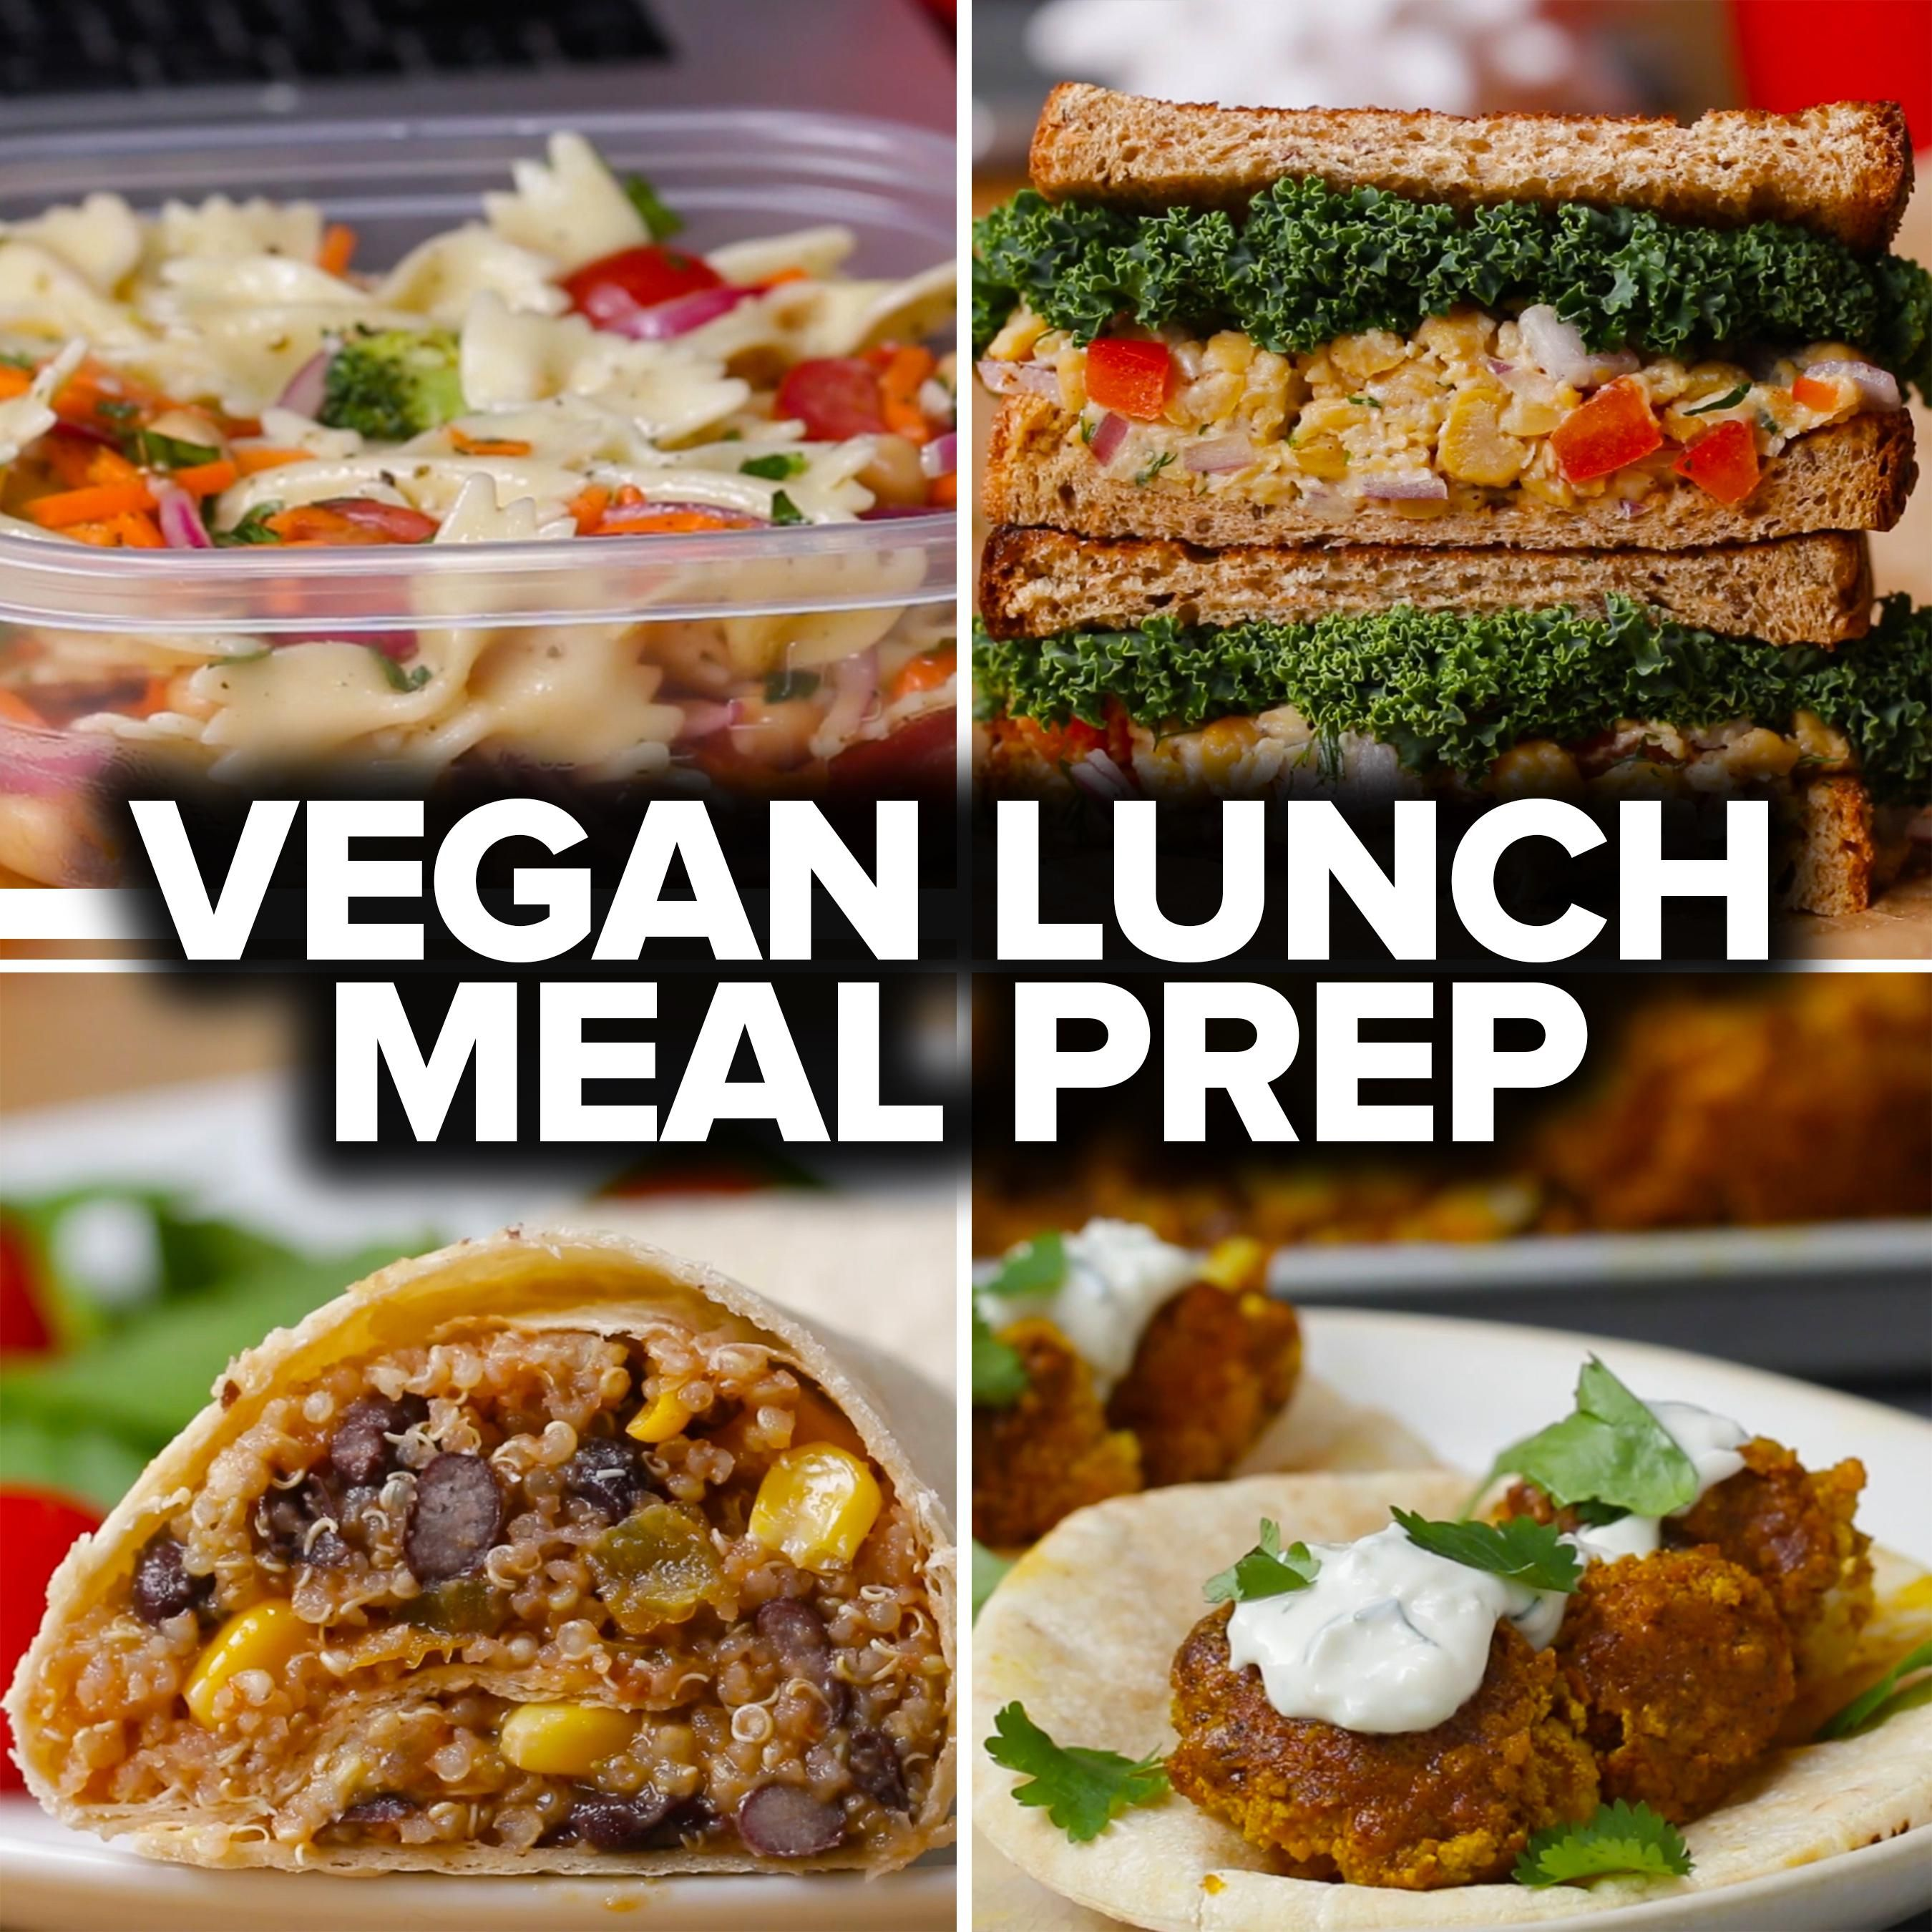 6 vegan lunch meal preps by tasty | lunch ideas | pinterest | vegan